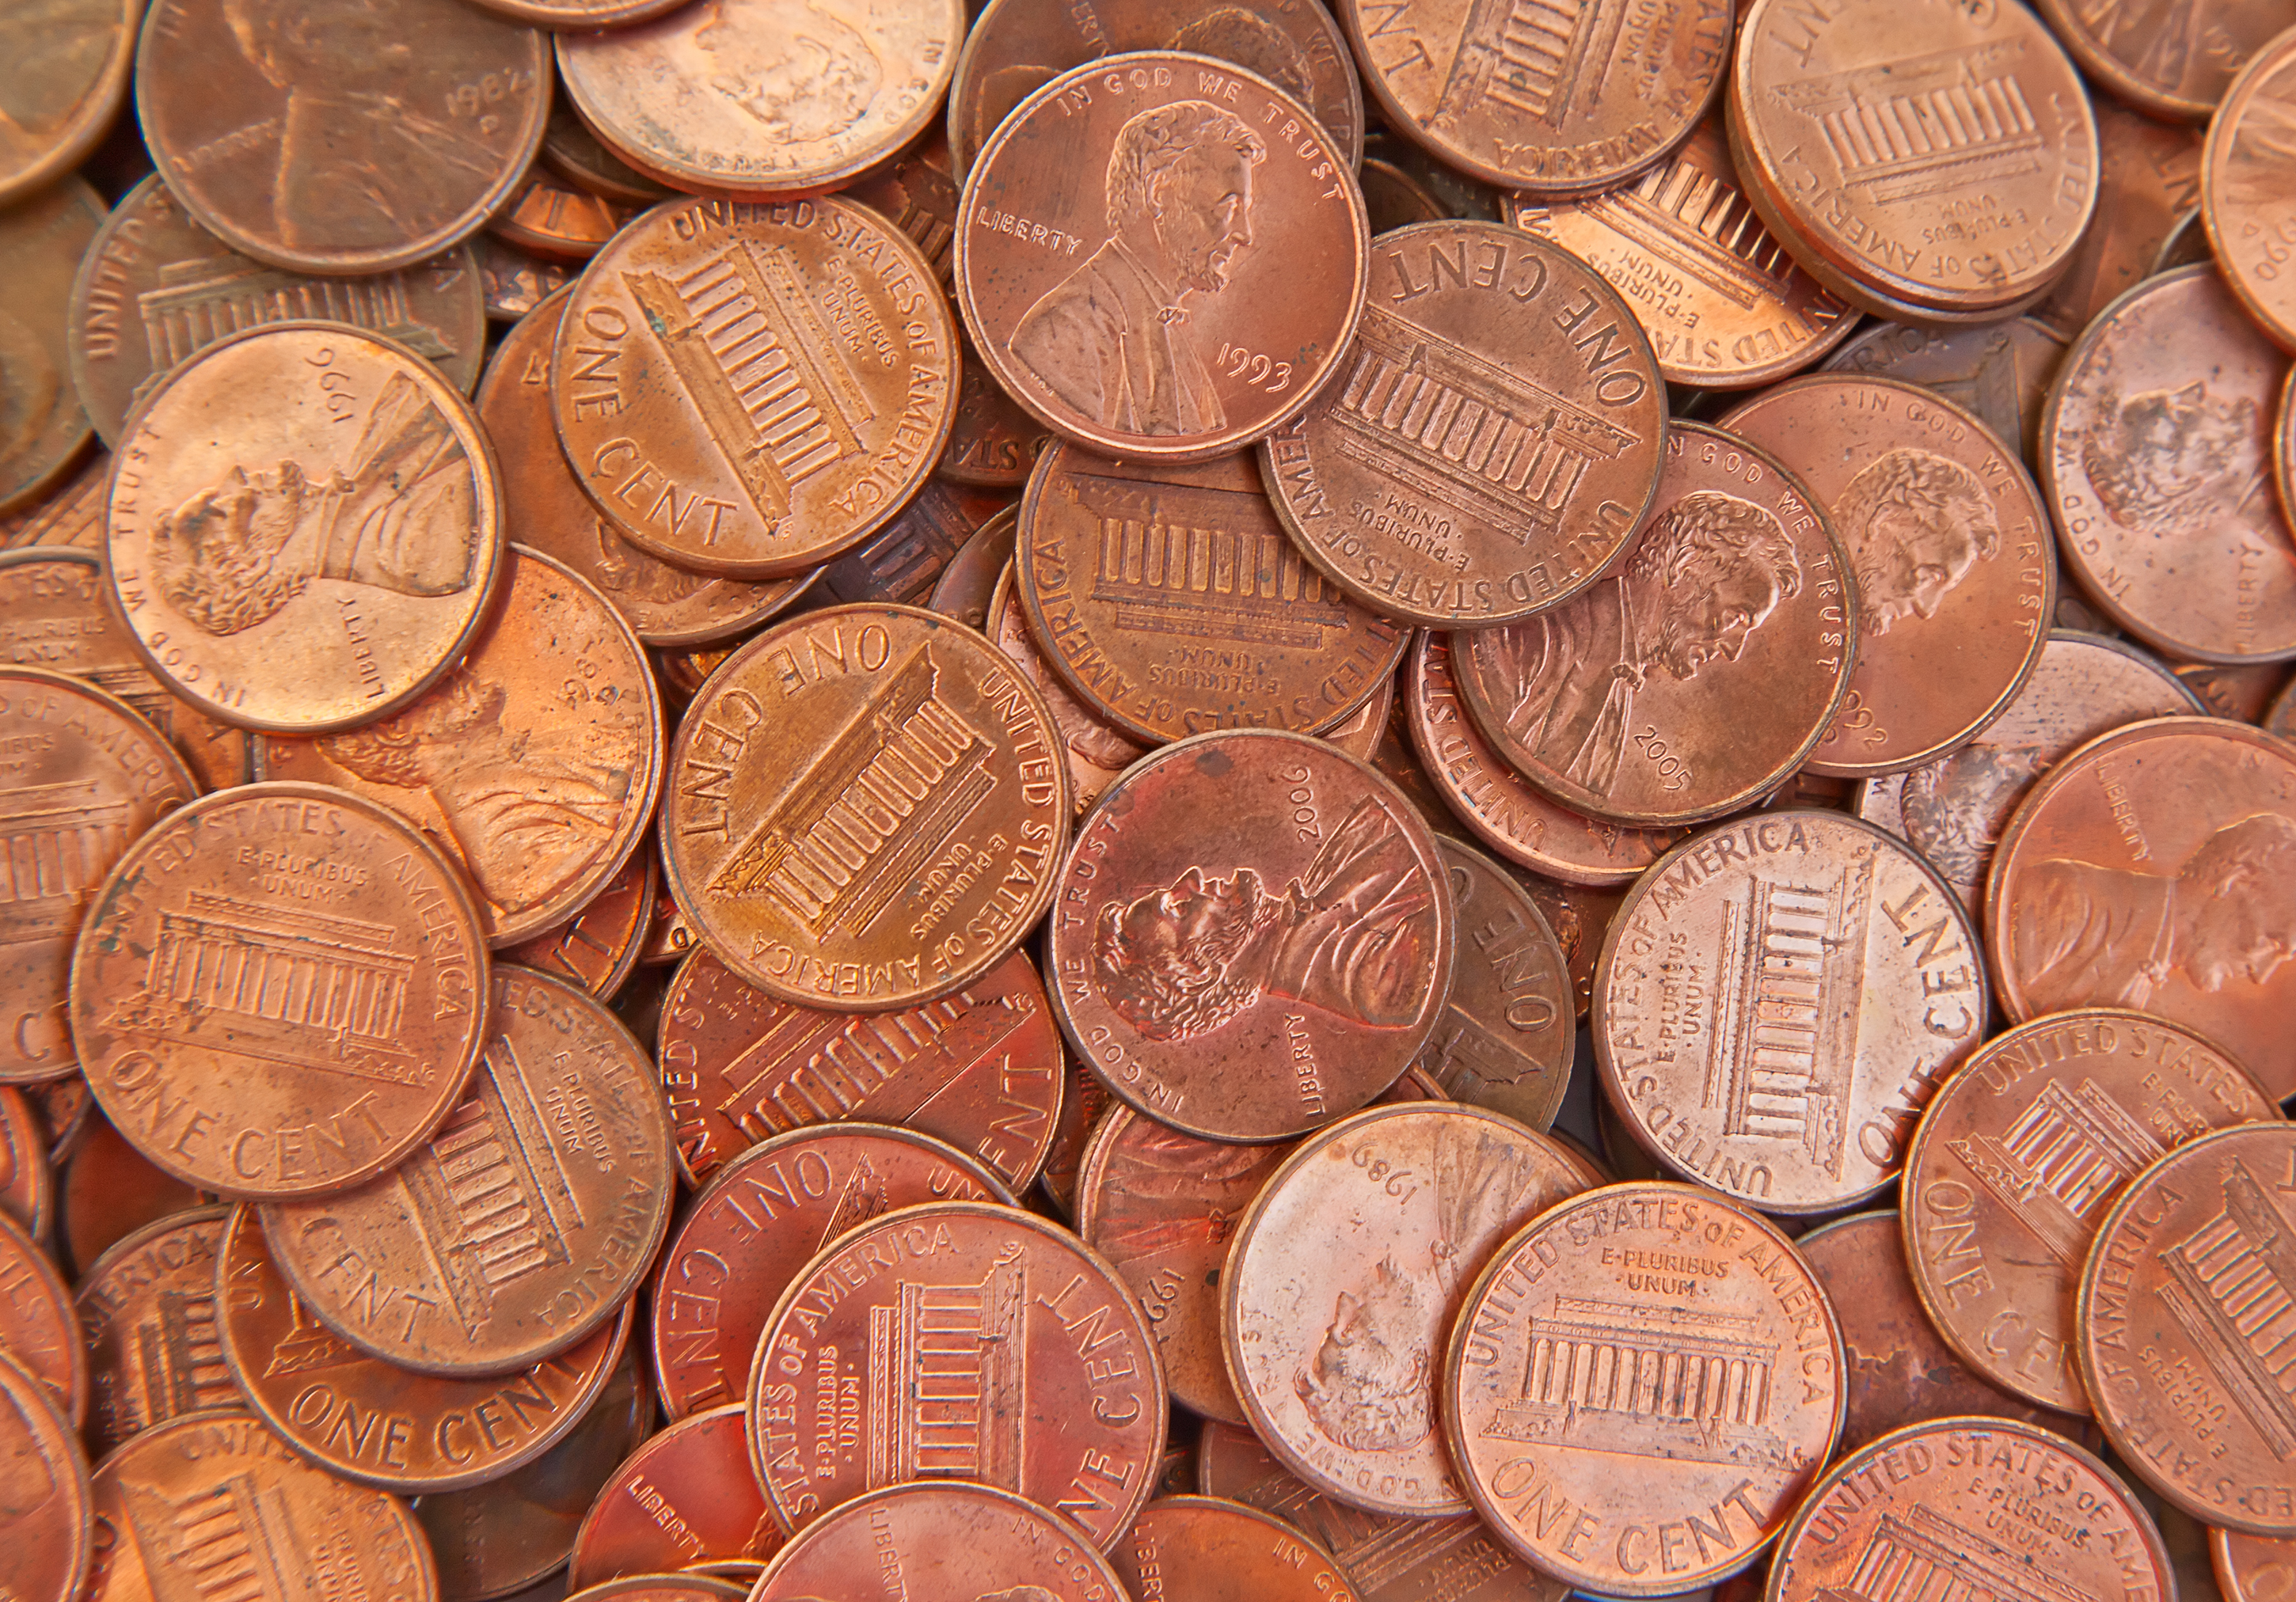 Happy National One Cent Day: So What Could a Penny Buy You 100 Years Ago?